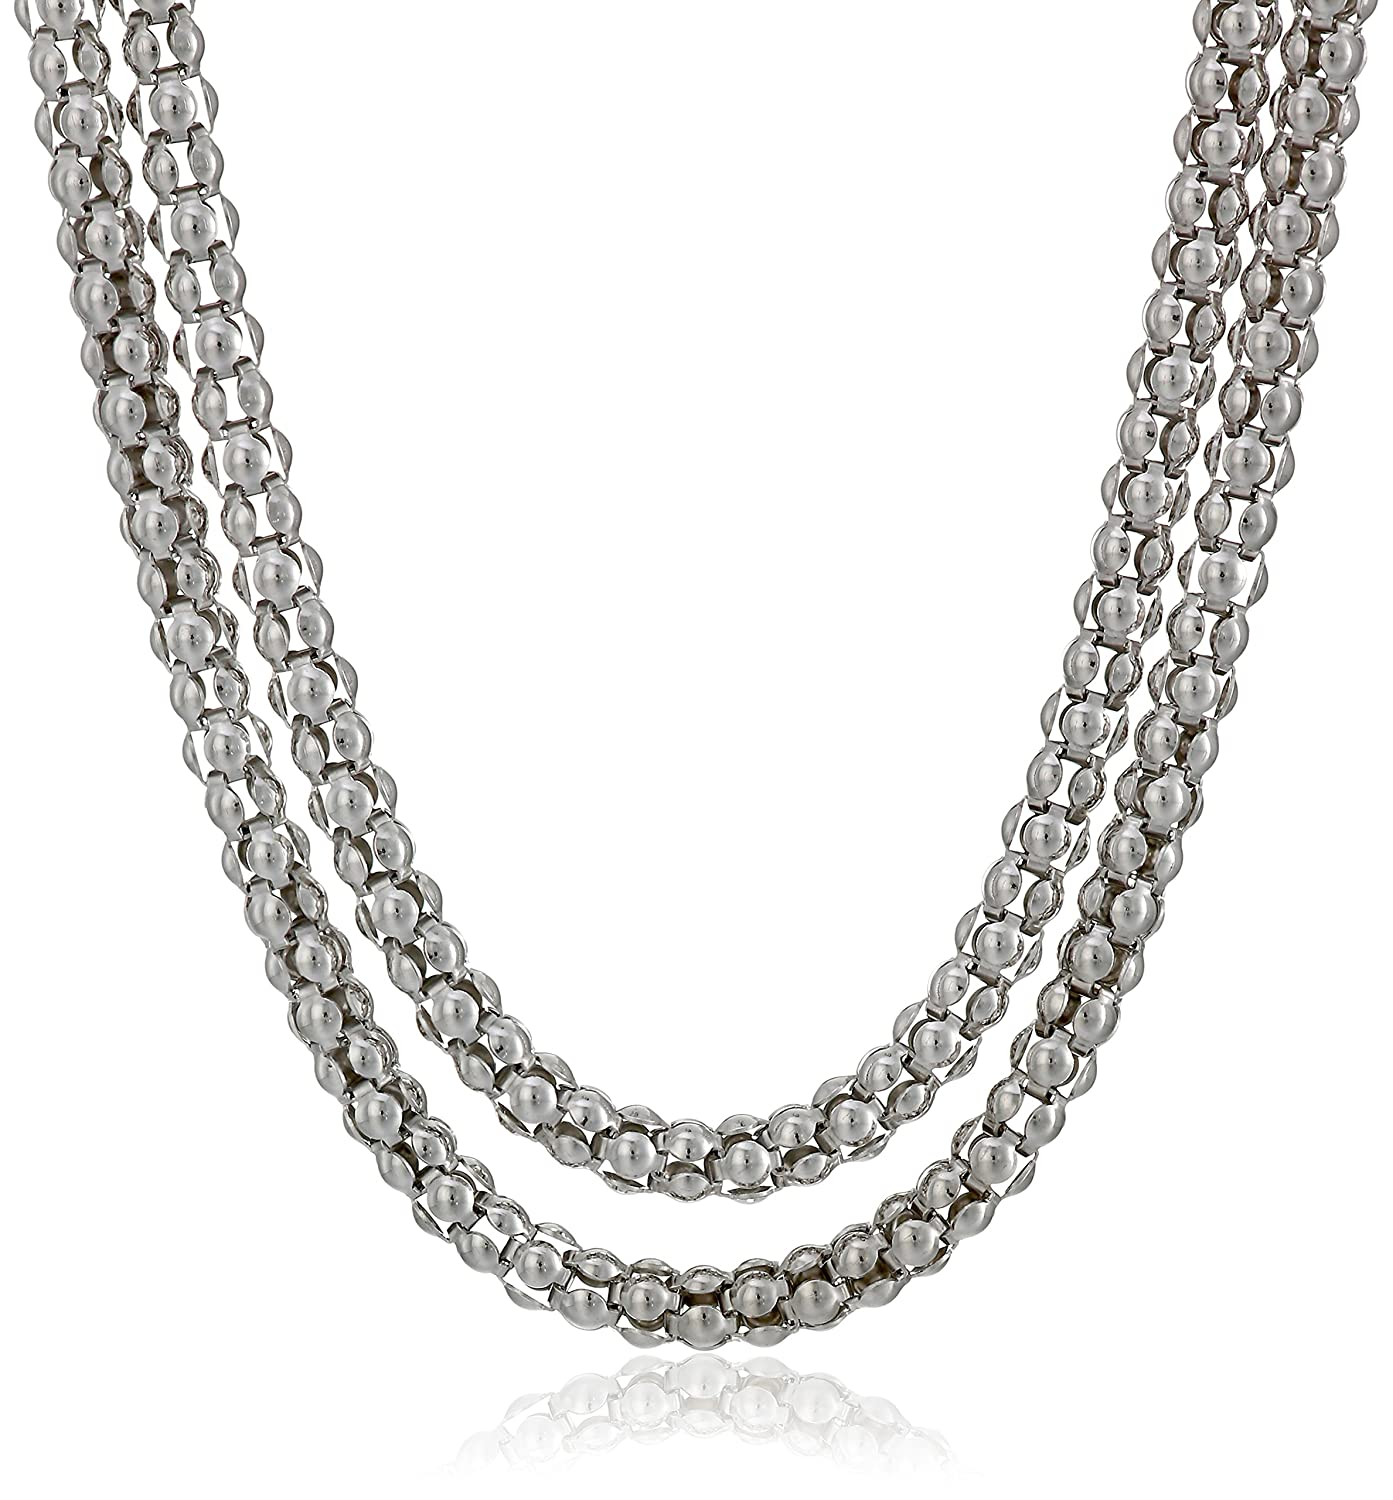 Sterling Silver Italian Popcorn Chain Necklace 16 Amazon Collection AGG 2.0 16